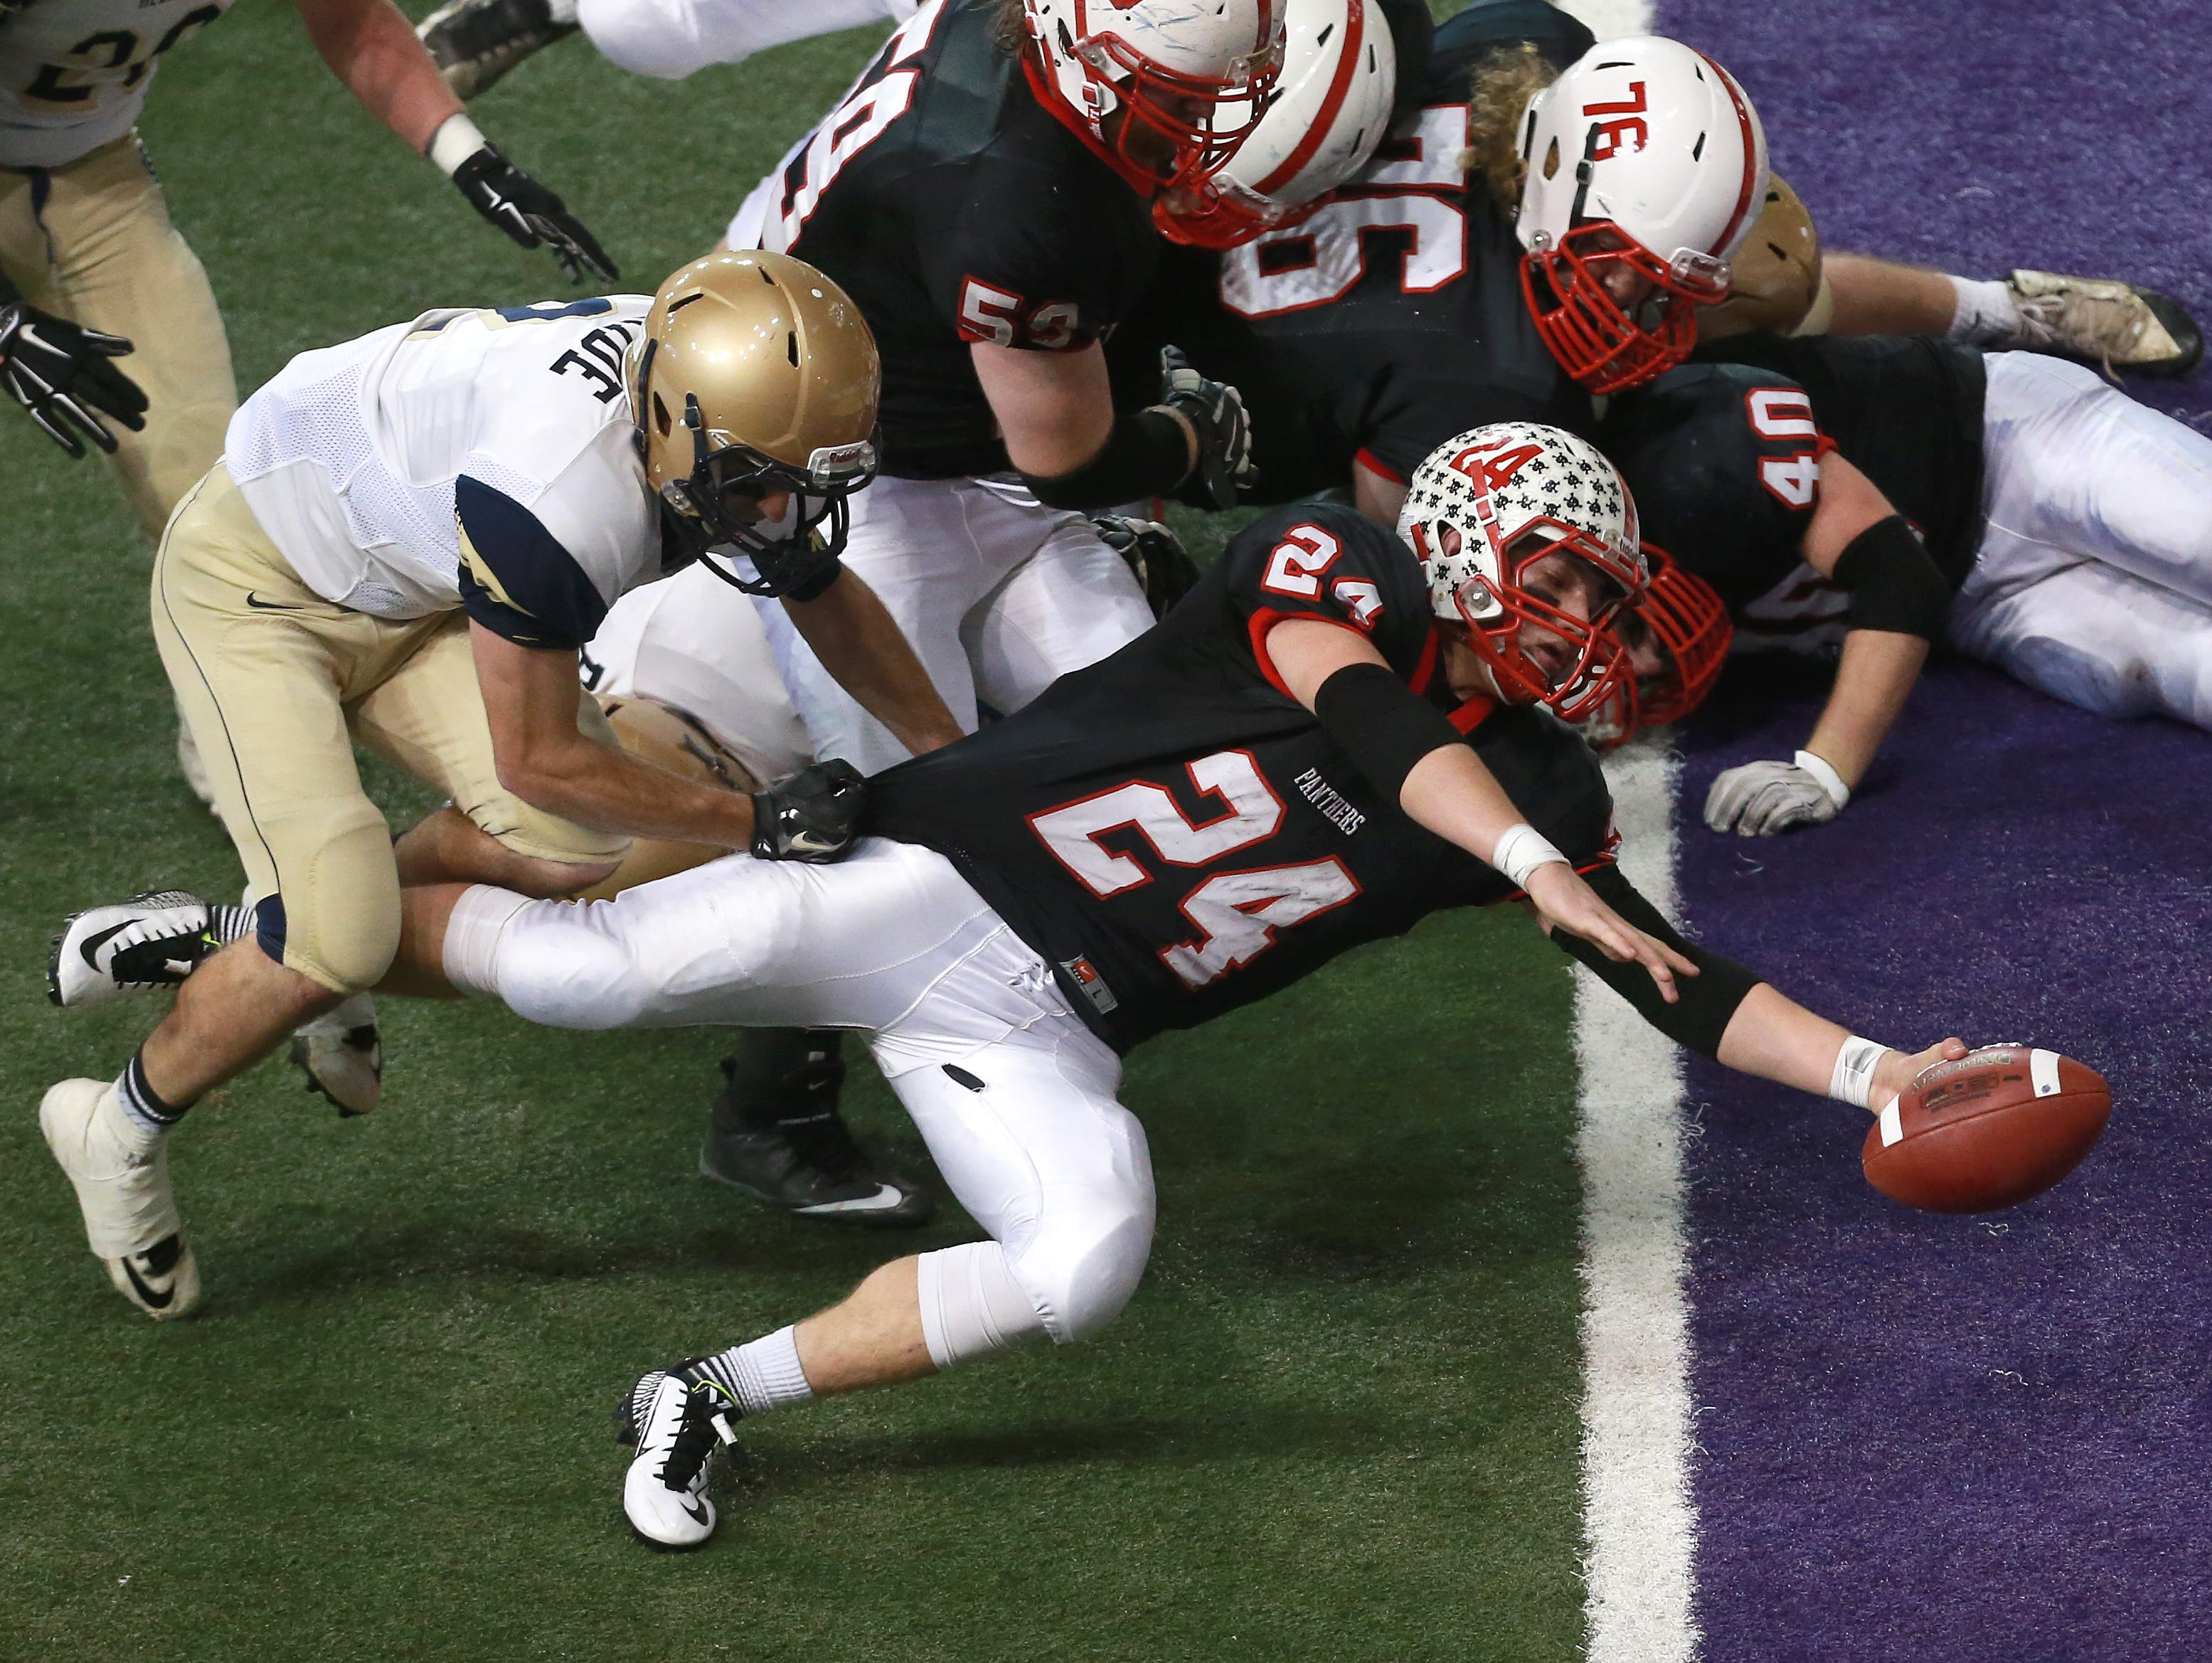 Creston-Oriant-Macksburg running back Chase Shiltz (24) has rushed for 209, 212 and 205 yards in his last three games.